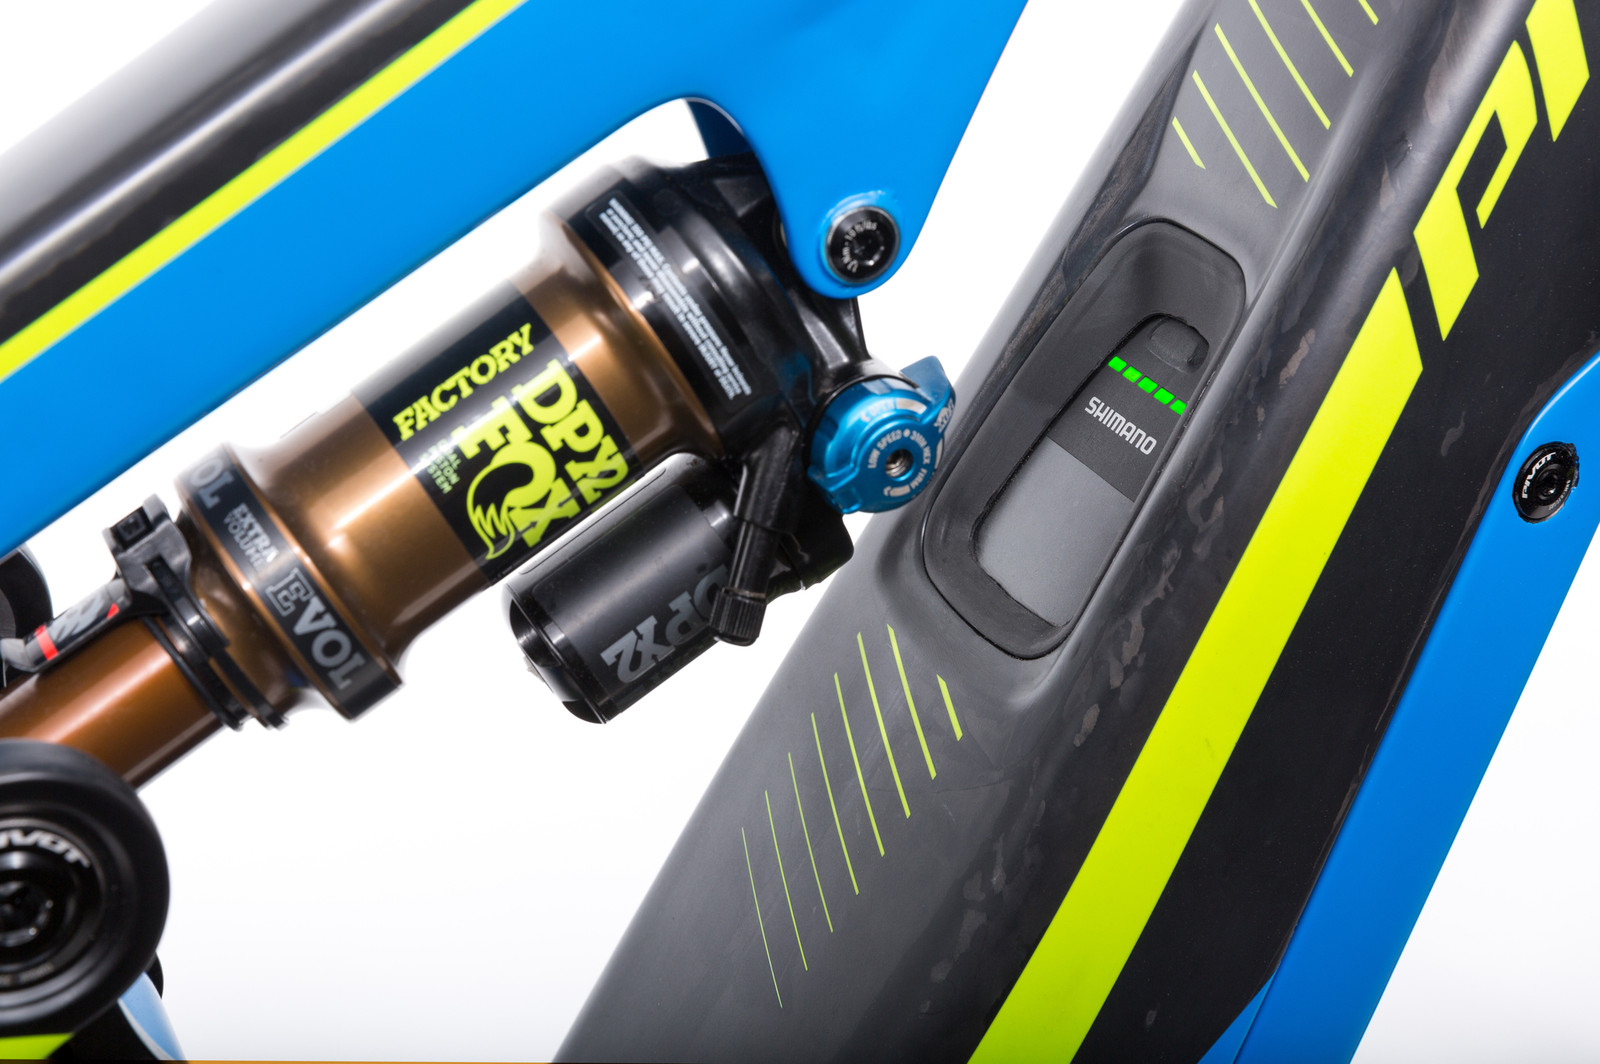 Pivot Enters The E Bike Market With Shuttle Mountain Bikes Of A Shock Absorbers 101 Tire Types Bicycle Geometry Fitting For Pivots World Class Enduro At An Incredibly Low Weight Just 1995kg 44lbs To Set New Standard Light In Emtb Category